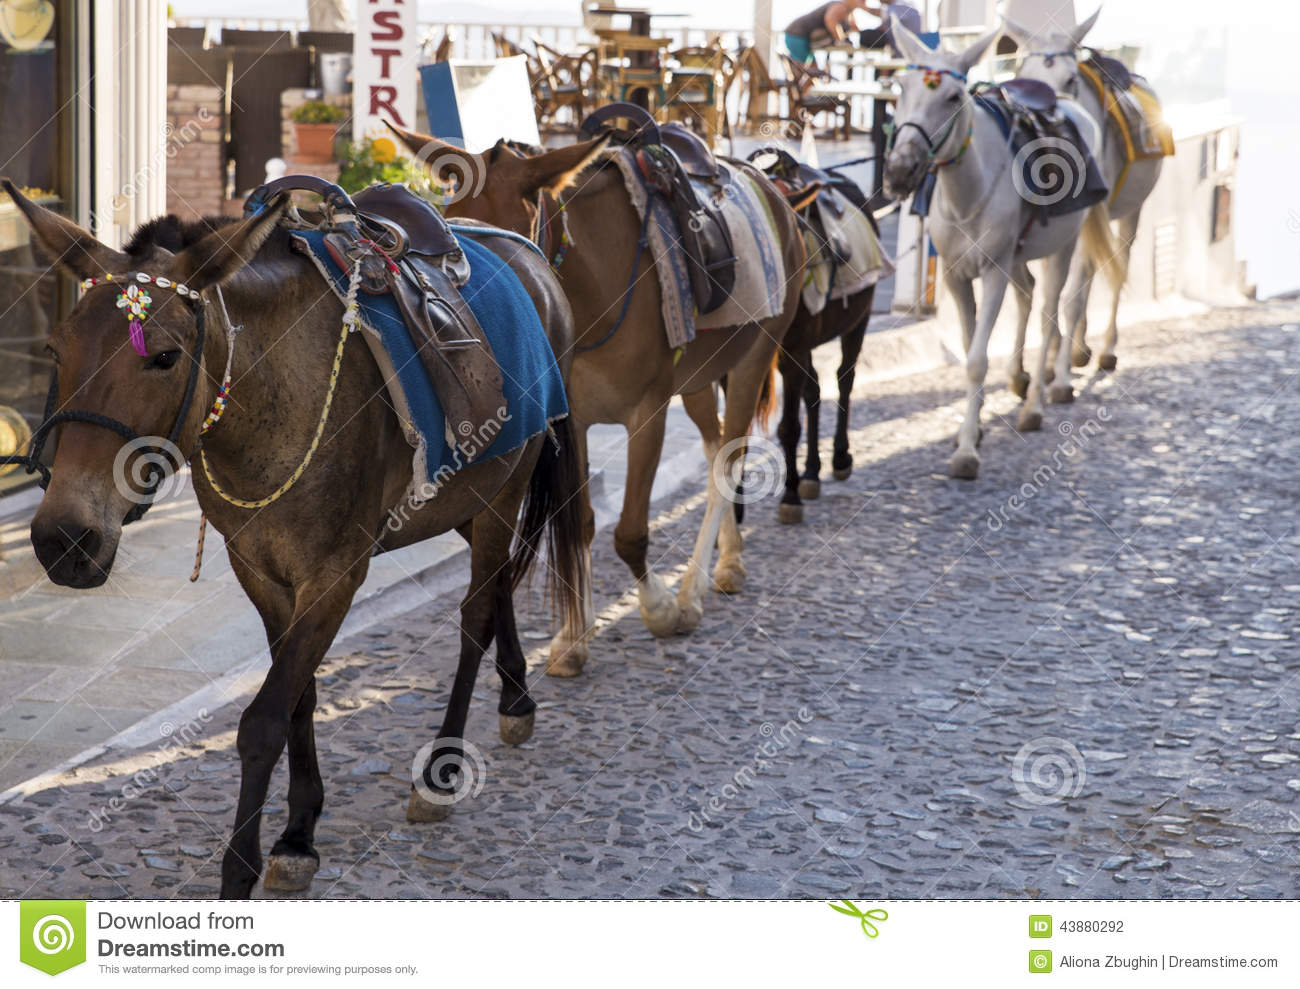 Santorini Horses Stock Photo - Image: 43880292